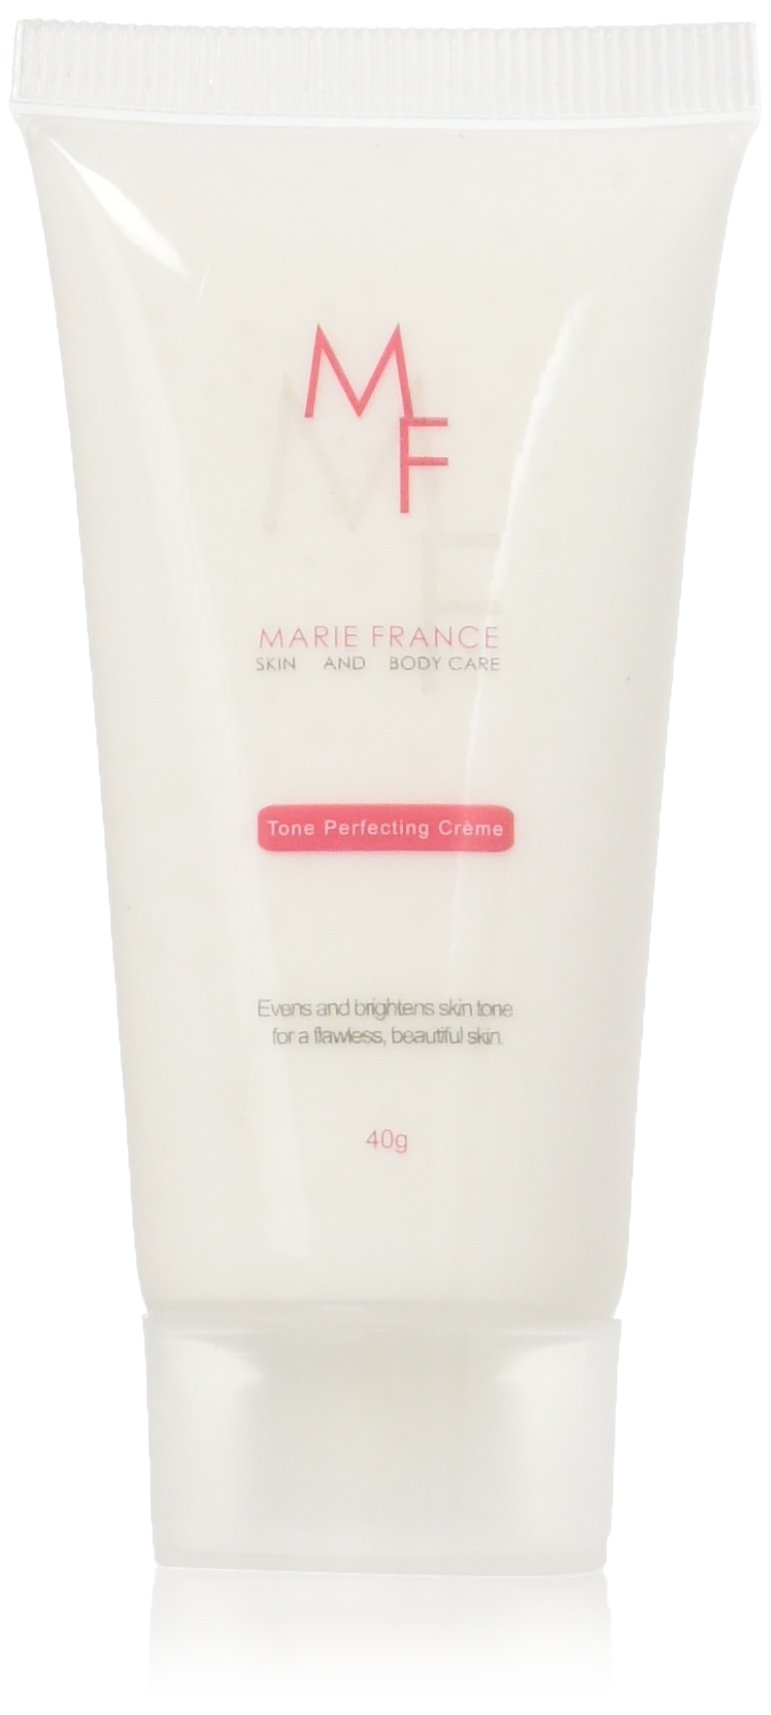 Marie France Tone Perfecting Creme - Butt, Inner Thighs, Bikini Area and Underarms Whitening Cream